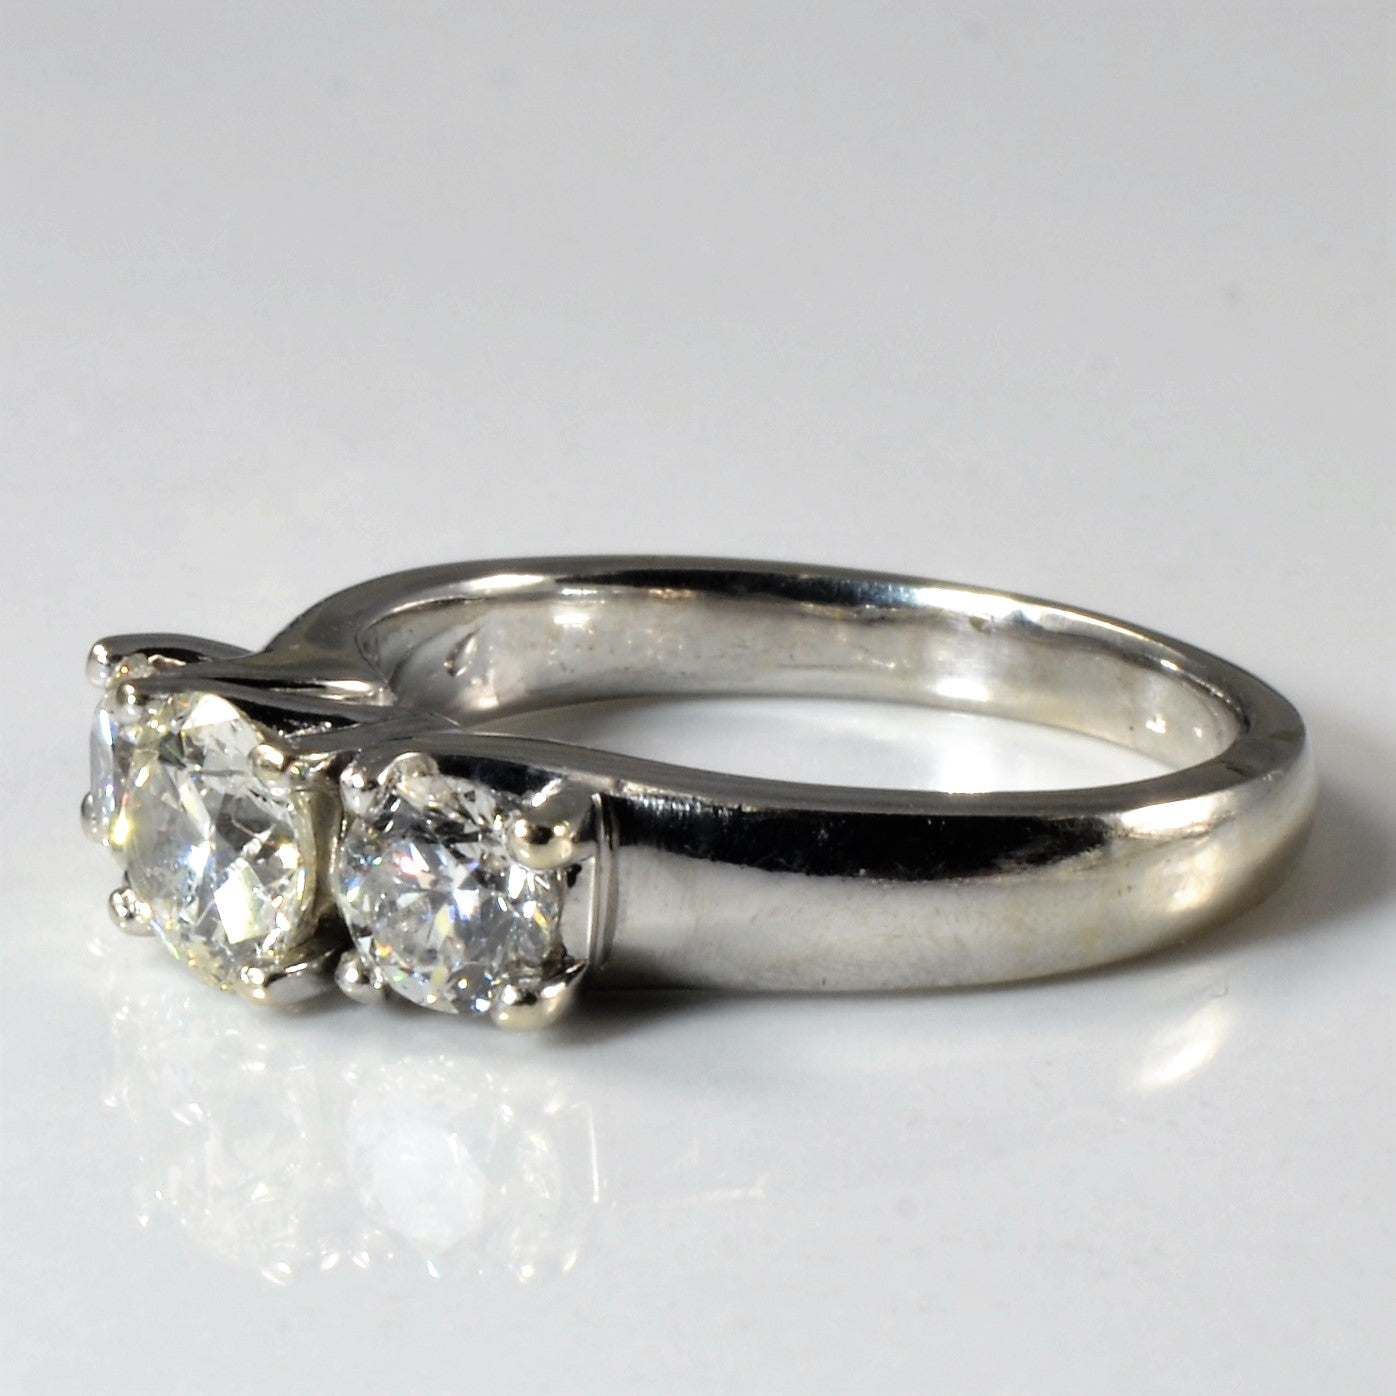 Elegant Three Stone Engagement Ring | 1.08 ctw, SZ 5.5 |